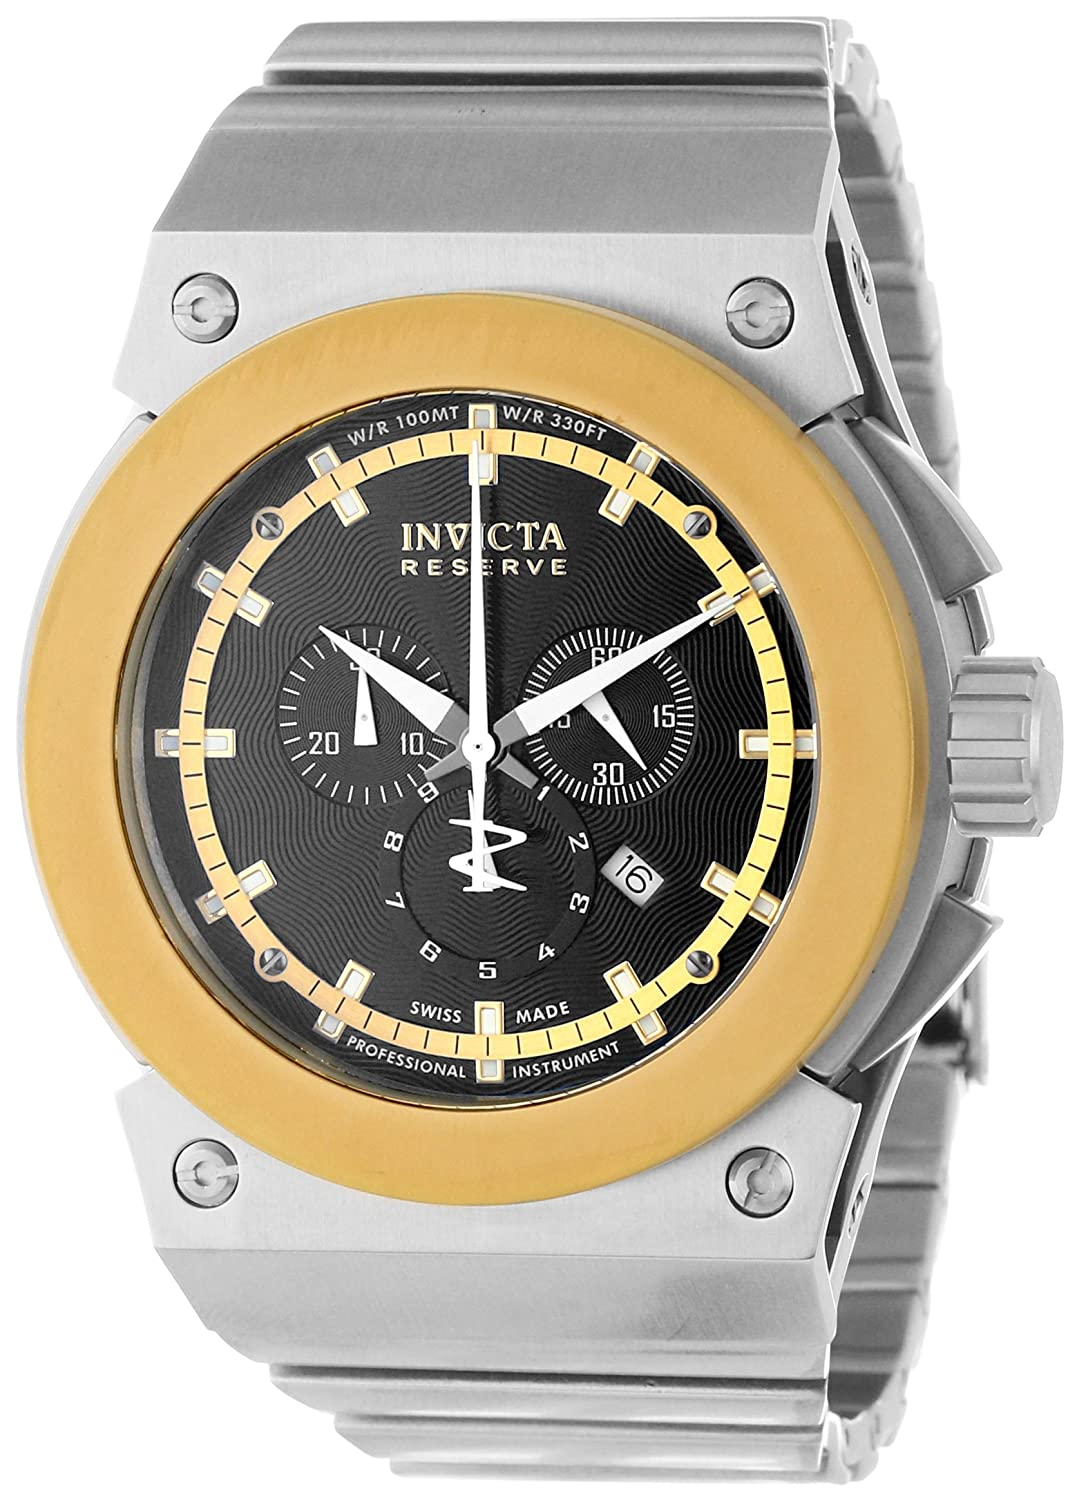 New mens invicta 11592 akula reserve swiss made chronograph black dial ss watch 886678115921 ebay for Swiss made watches